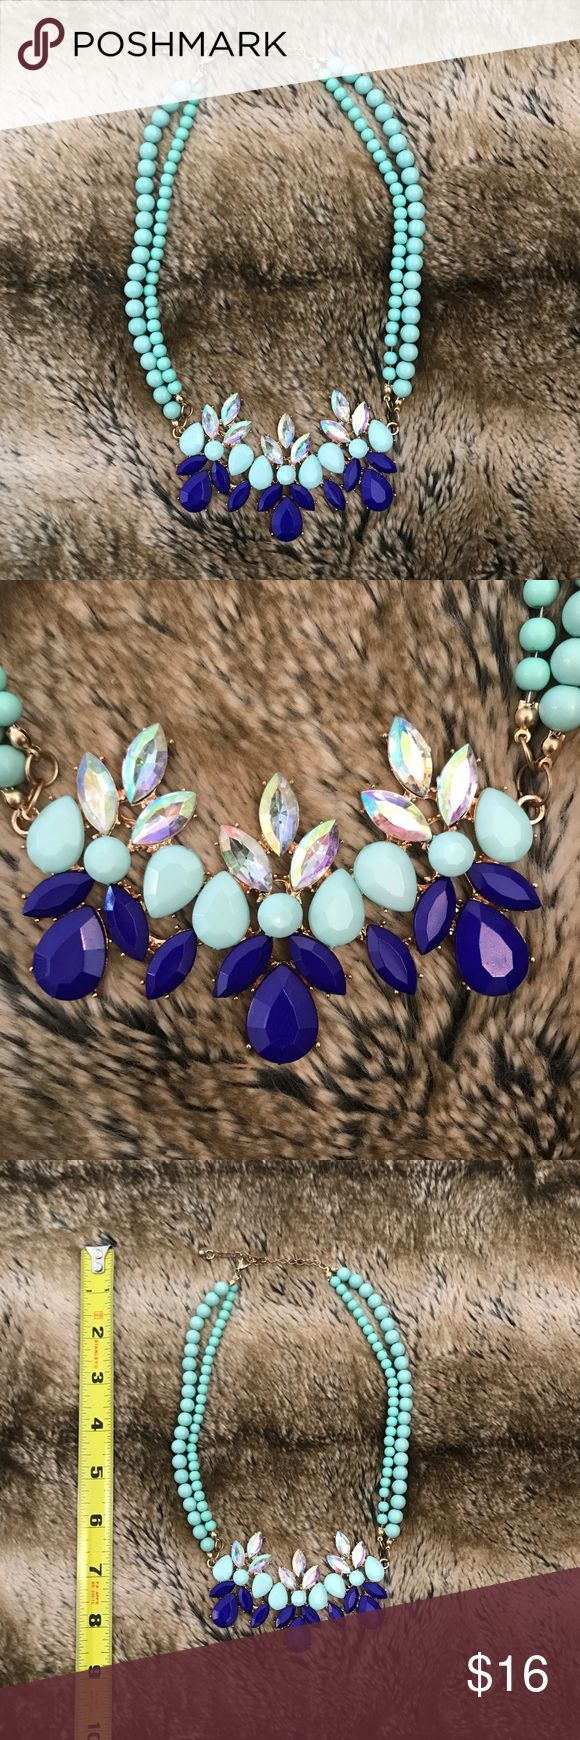 SALE🎉 Mint Green and Blue Statement Necklace Beautiful statement necklace with mint green beads and blue, mint green, iridescent gems. Adjustable chain length. Purchased from a boutique. Unbranded Jewelry Necklaces